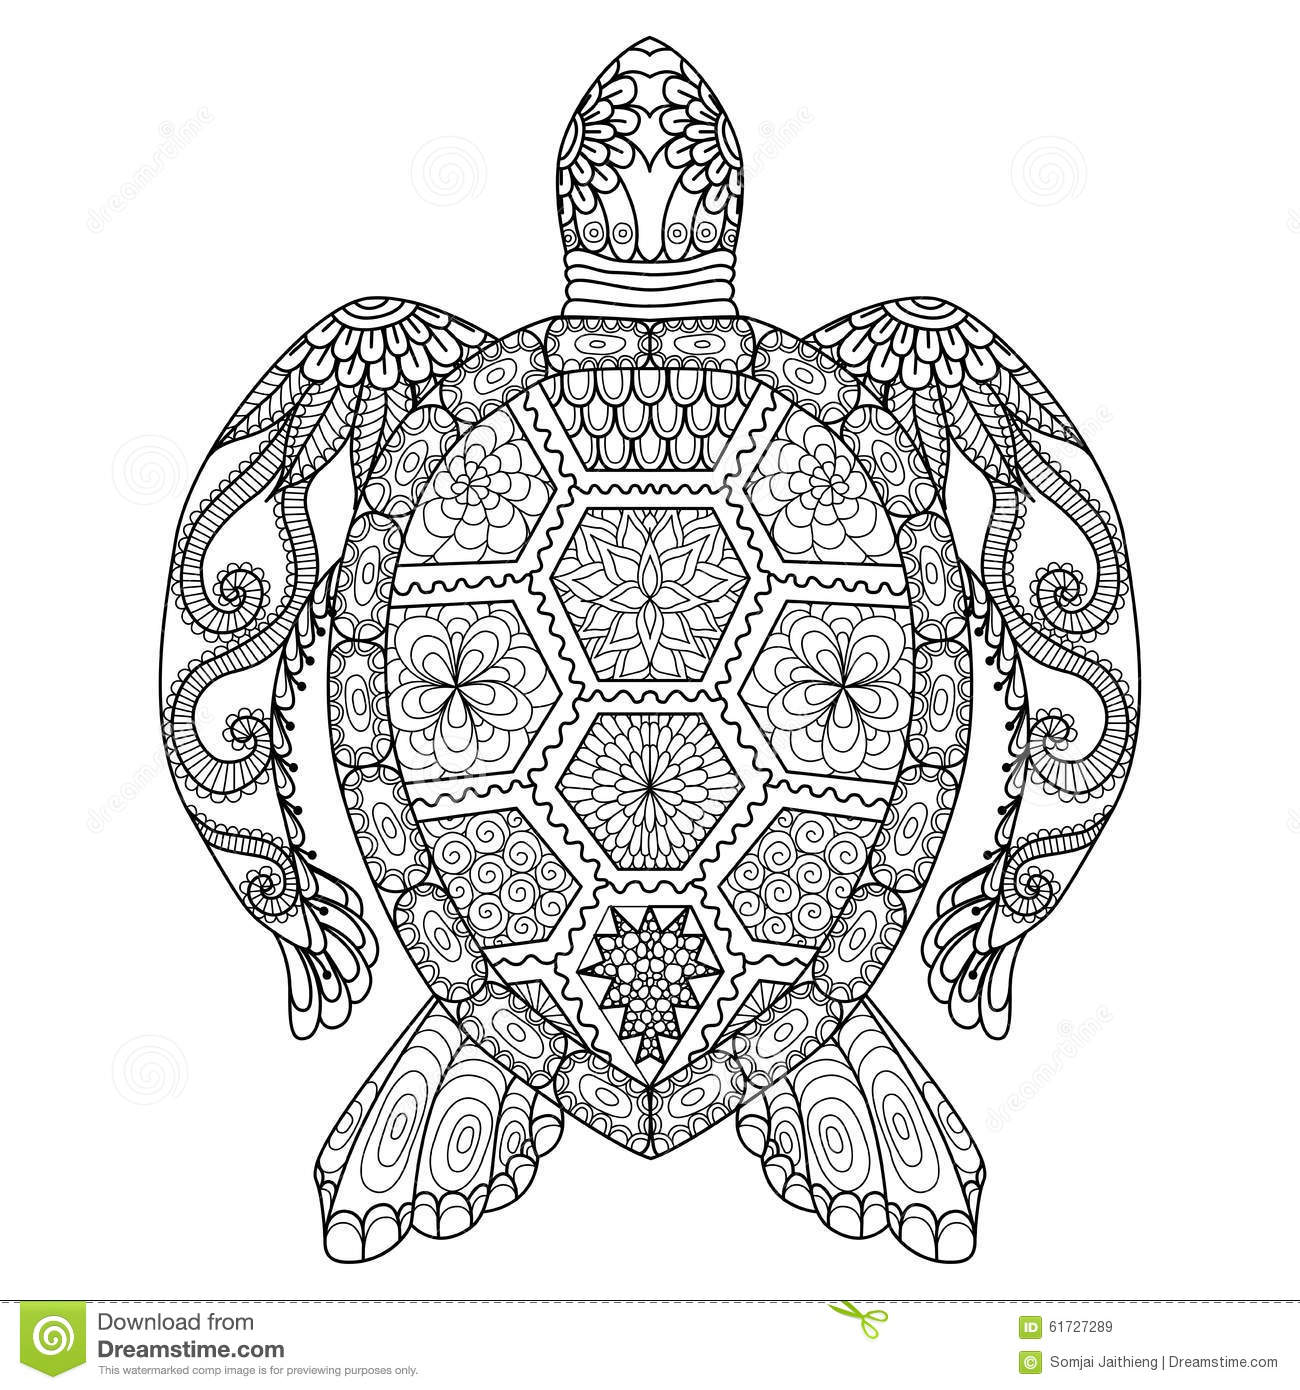 further  as well 74554 baby deer together with easter egg cut out 4 furthermore  as well 3 gif as well  in addition  also  furthermore 500 F 94819804 gIMUMrzKTRHHzXggBZpIykilmmpyp4fL furthermore . on mandala coloring pages marine life